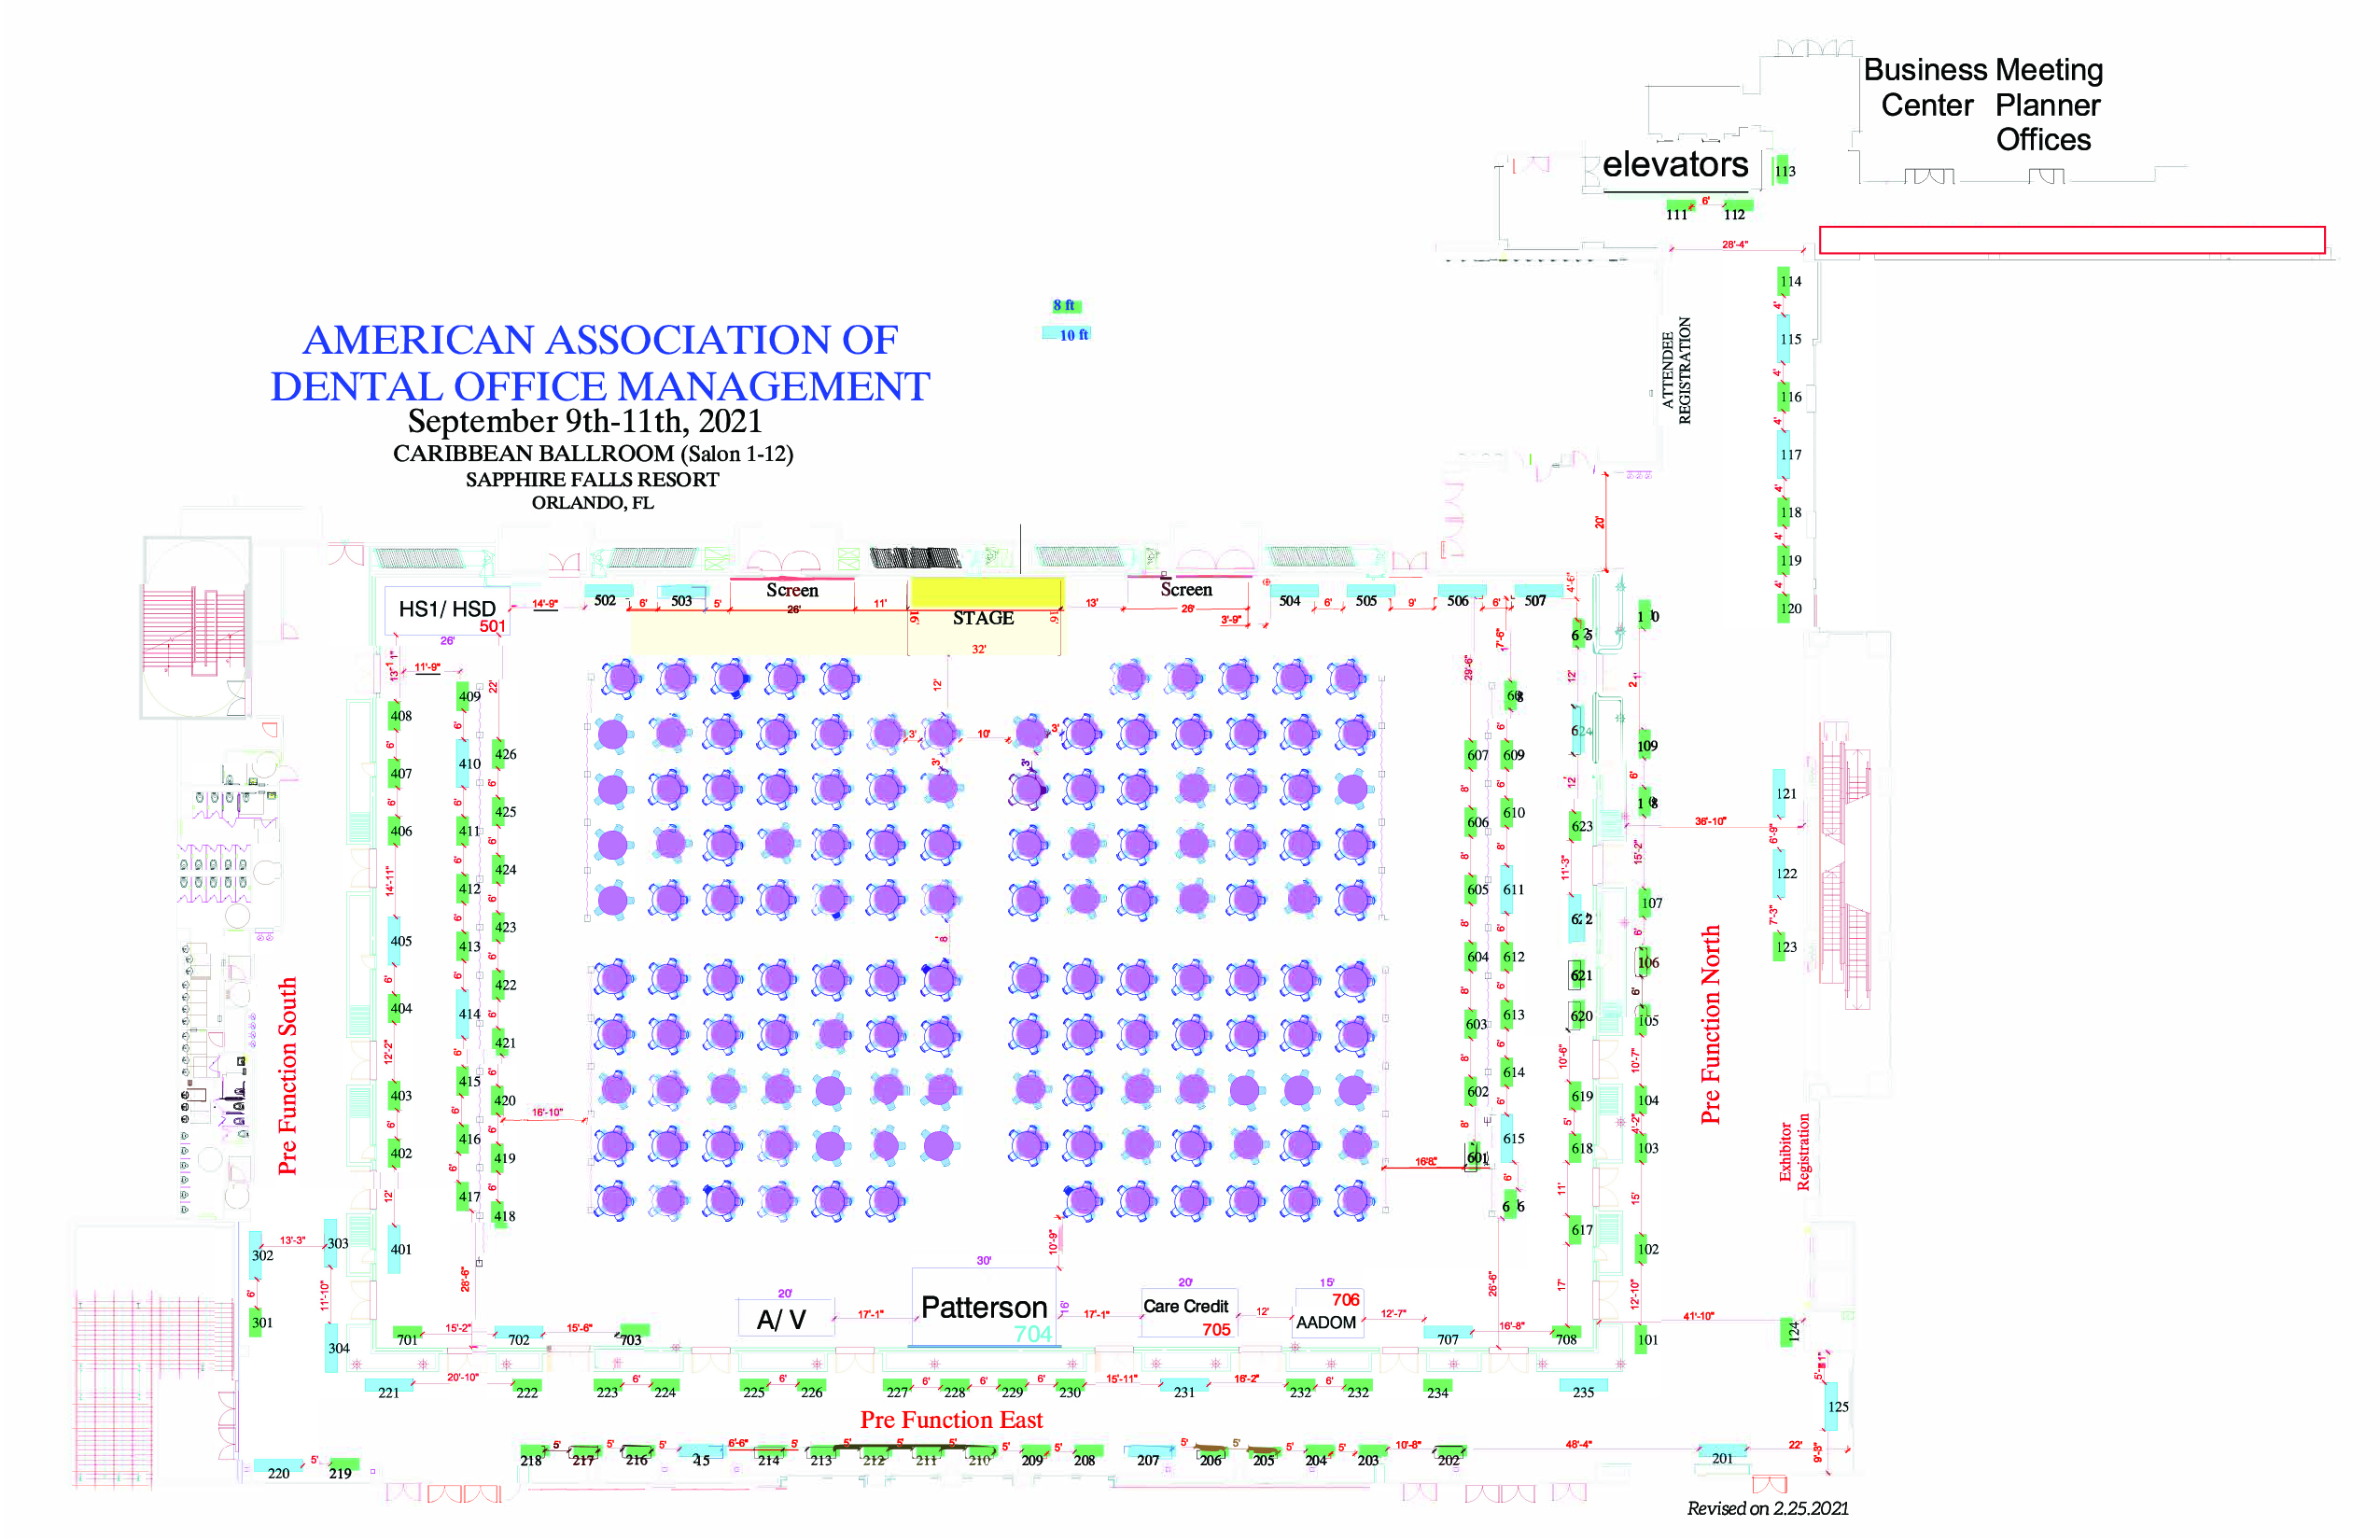 AADOM Conference Booth Location